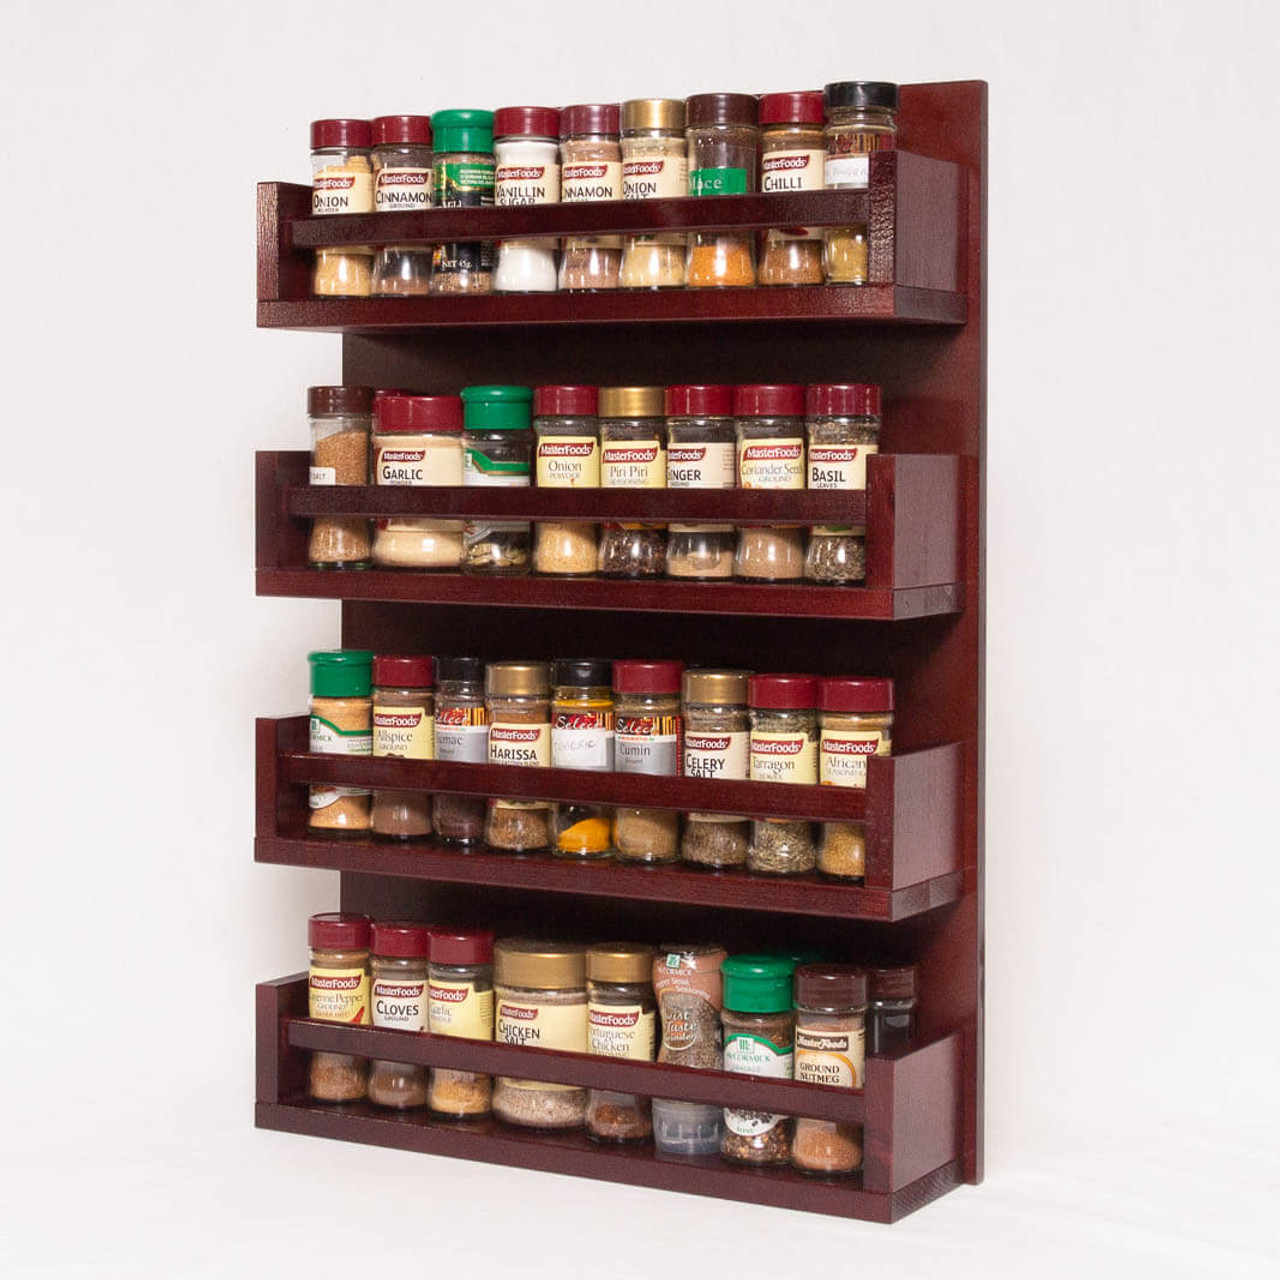 Spice Rack Wooden Open Top 4 Tiers Timber Rail 72 Spice Jars